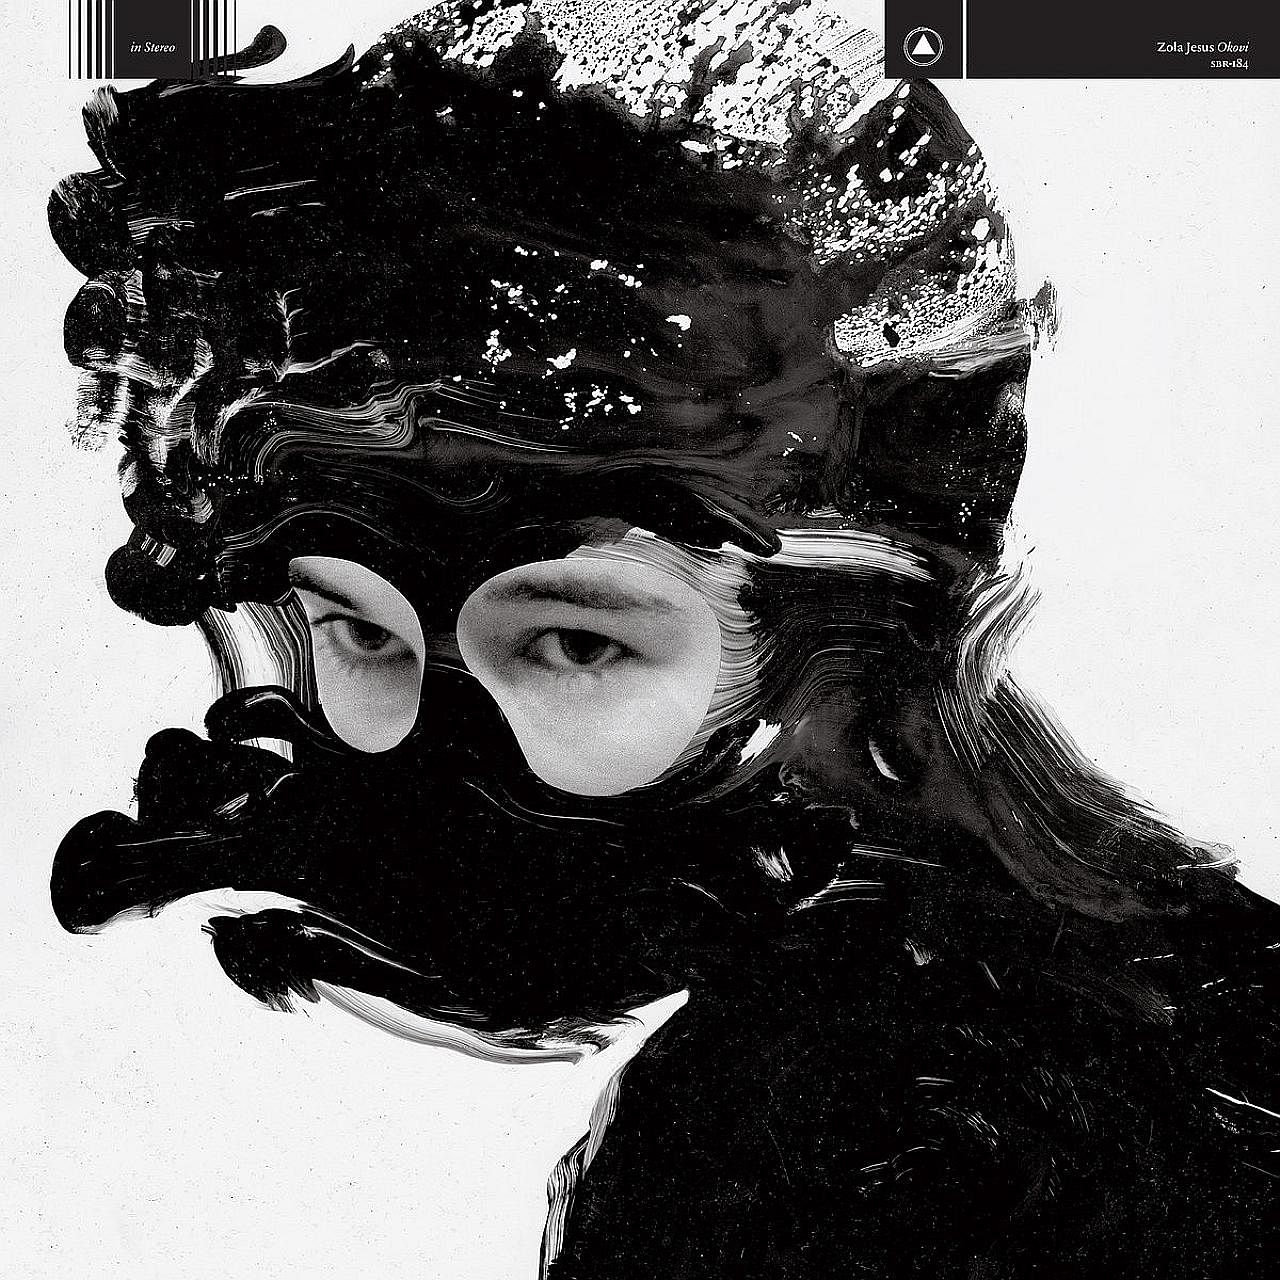 """Zola Jesus' latest album is Okovi, which means """"shackles"""" in several Slavic languages."""